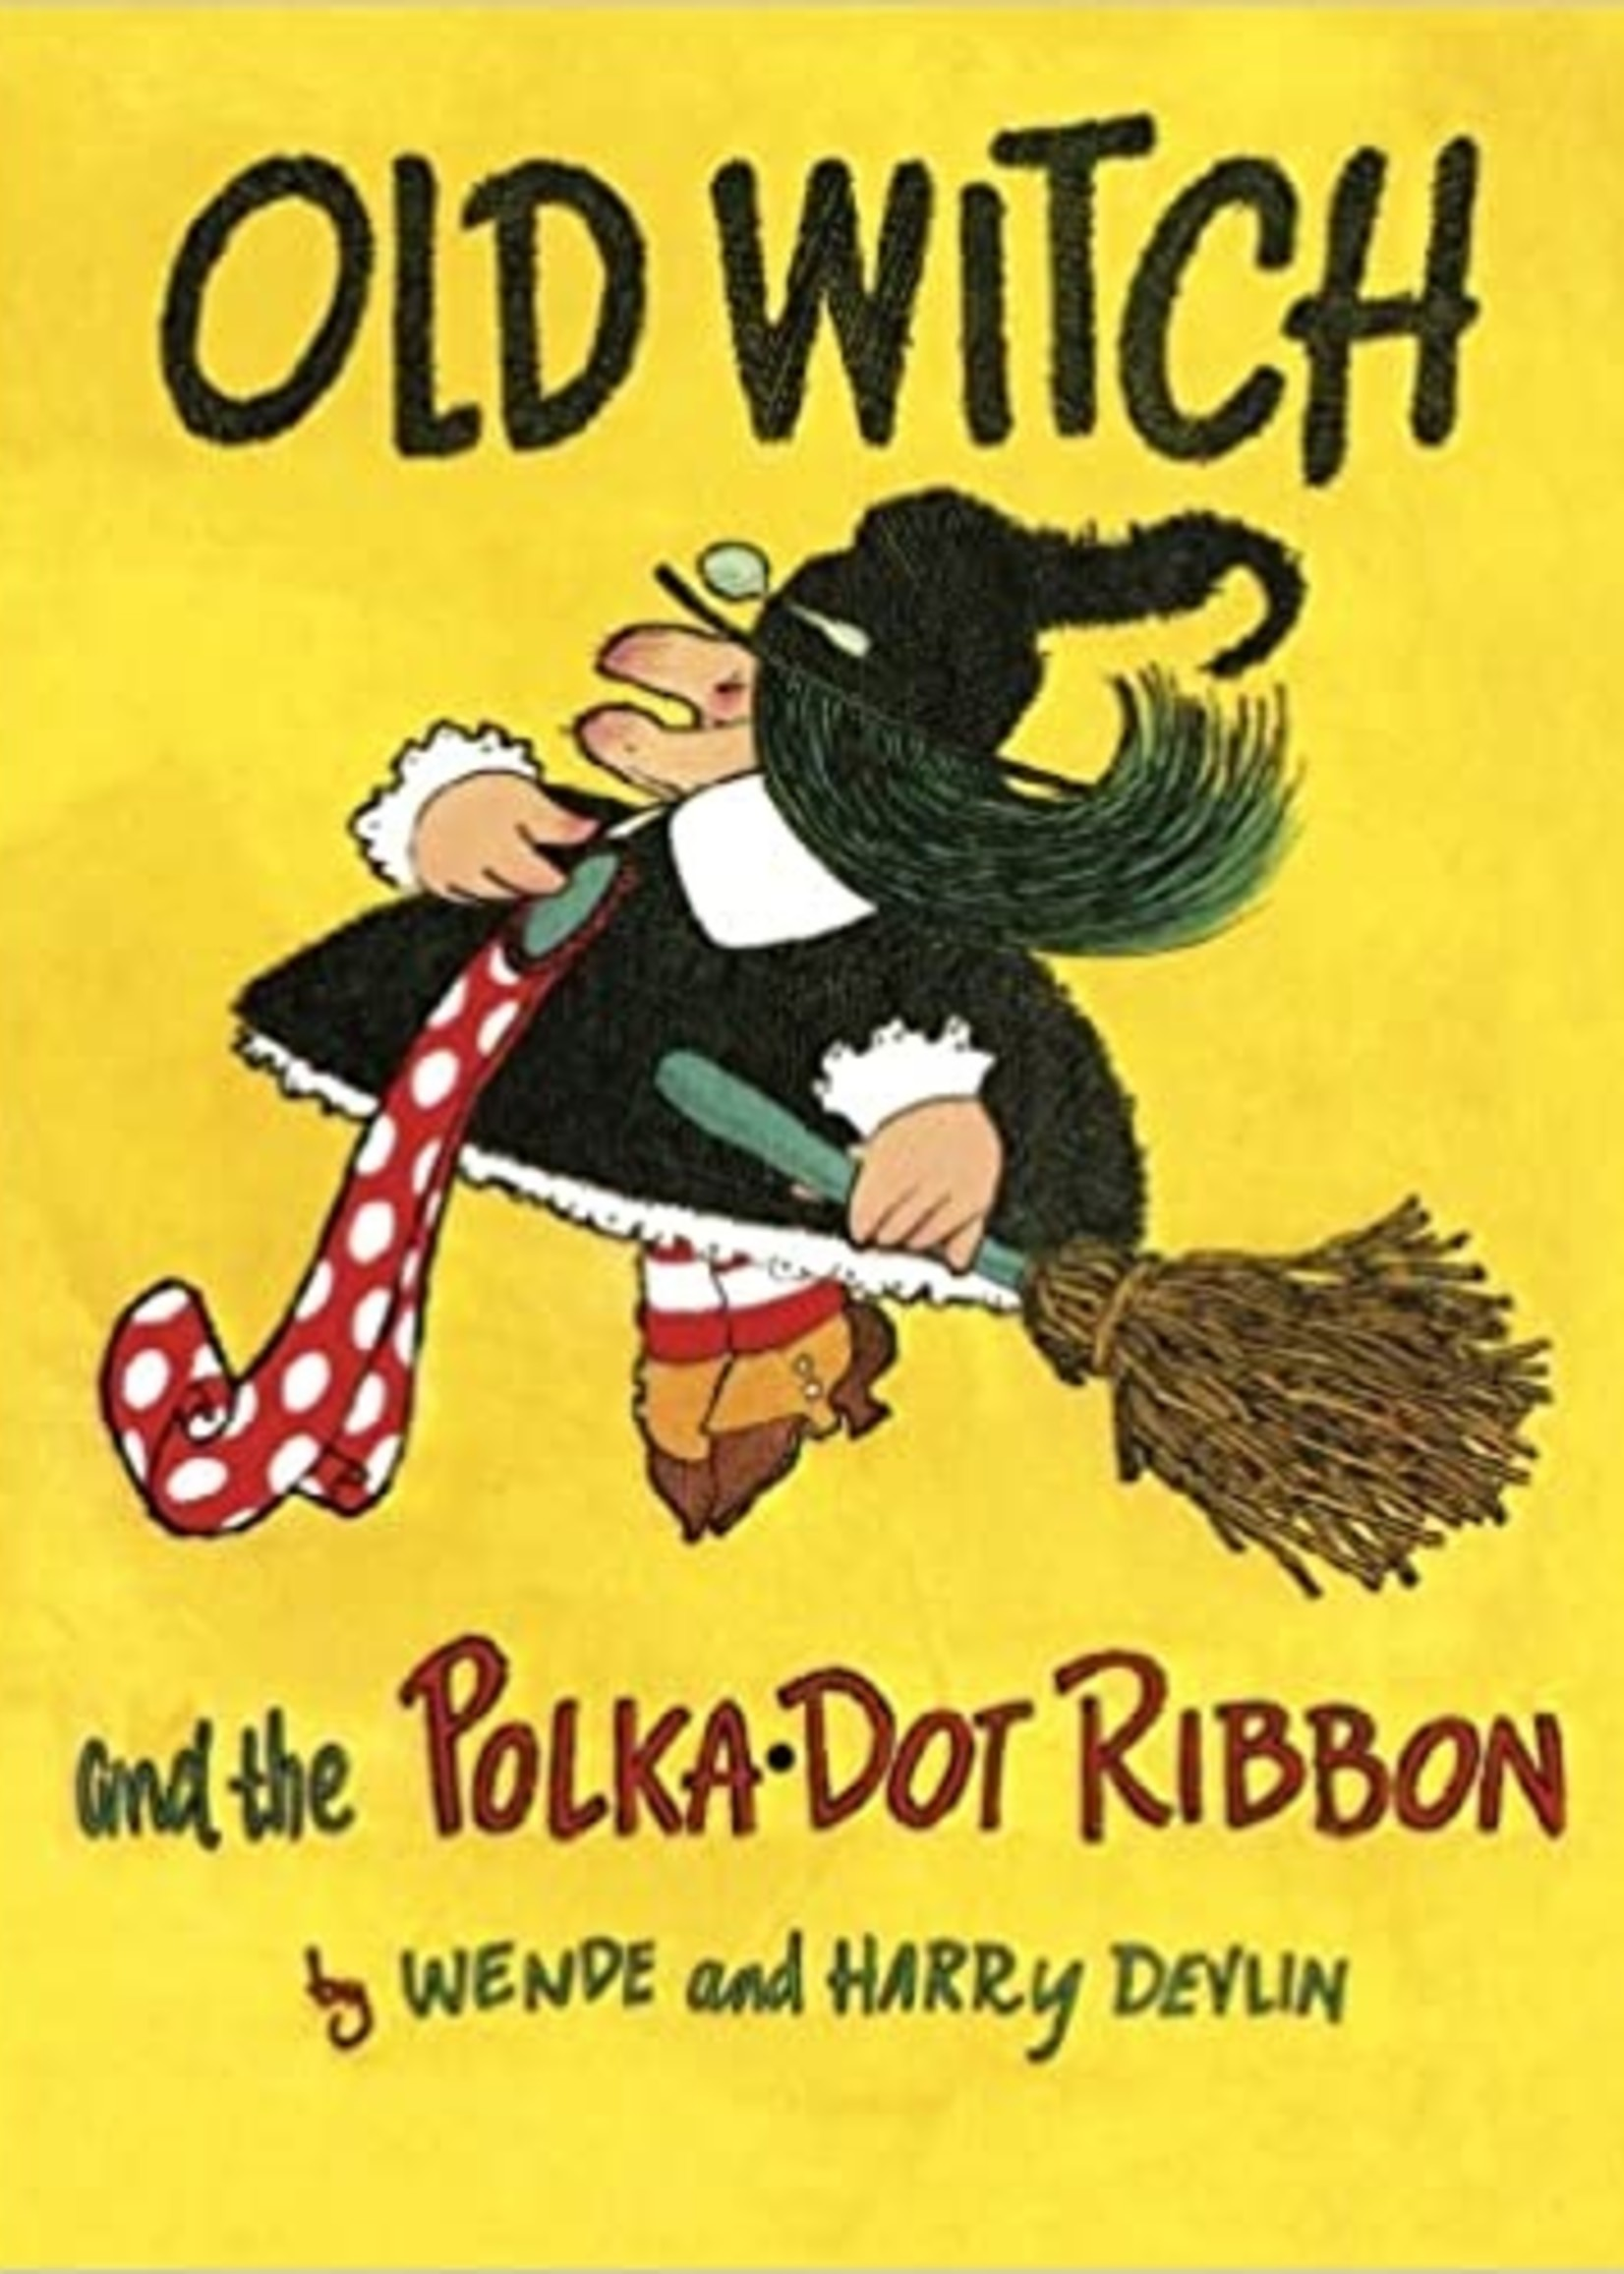 Old Witch and the Polka Dot Ribbon - Hardcover